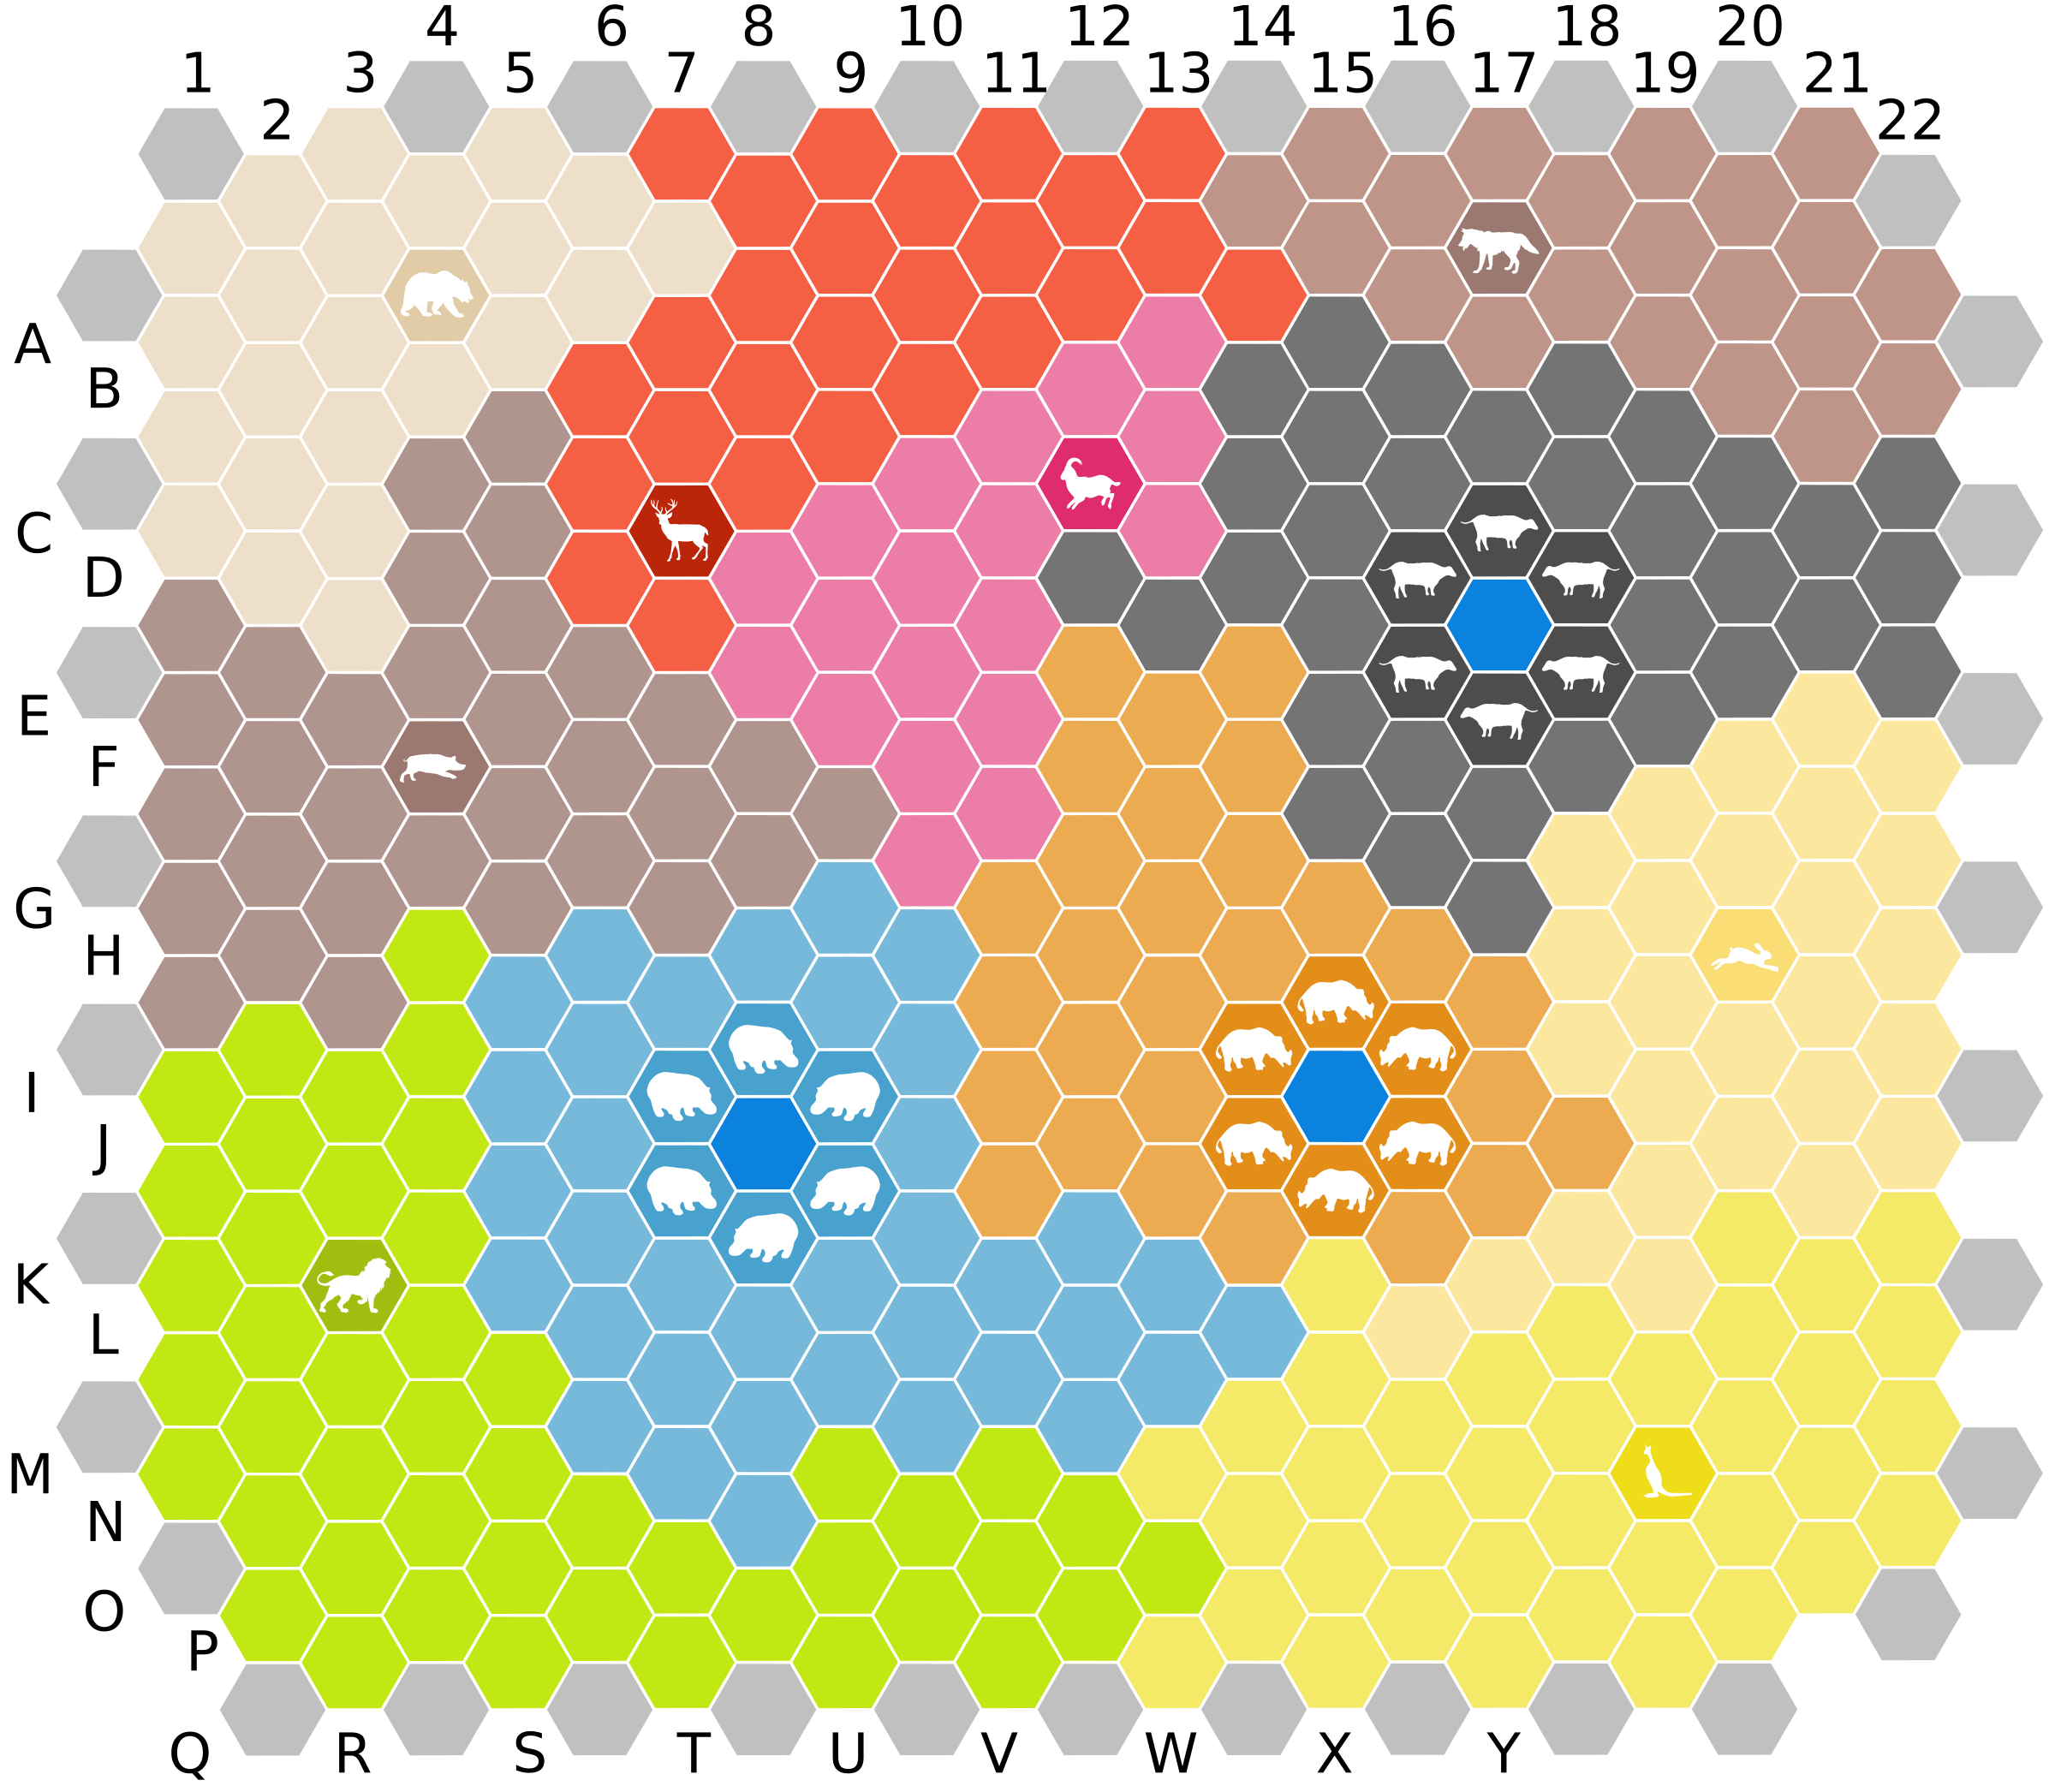 Hex board by Clon